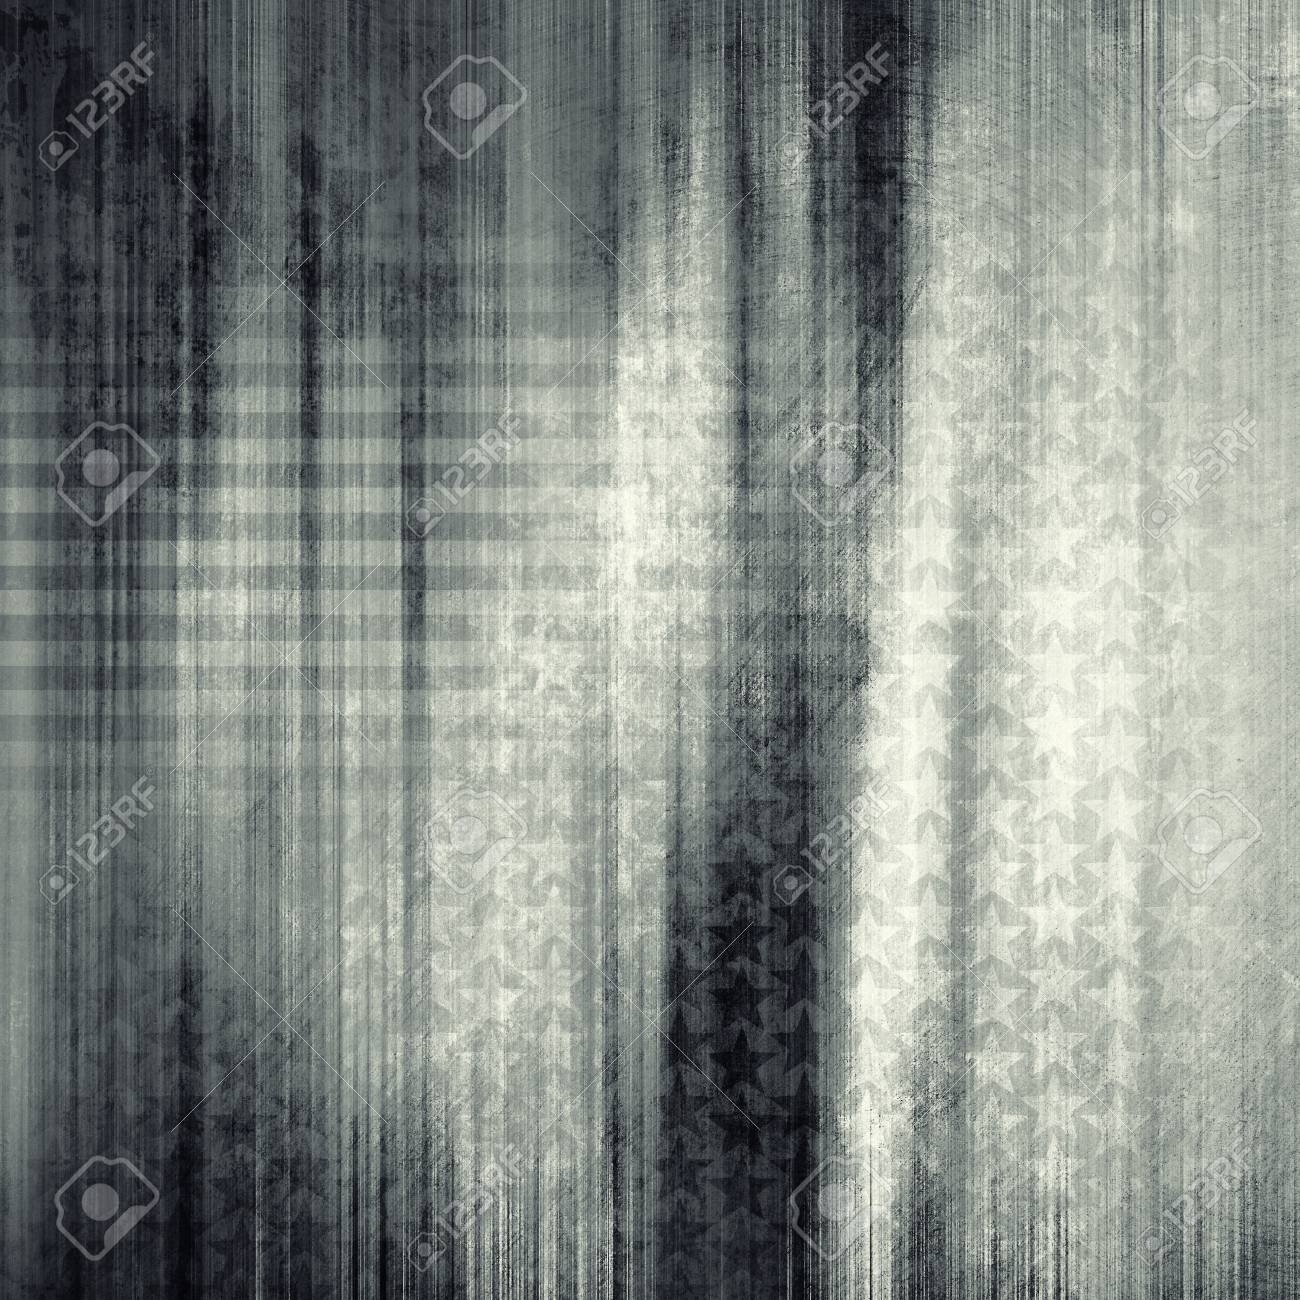 Grunge background or texture Stock Photo - 28379590